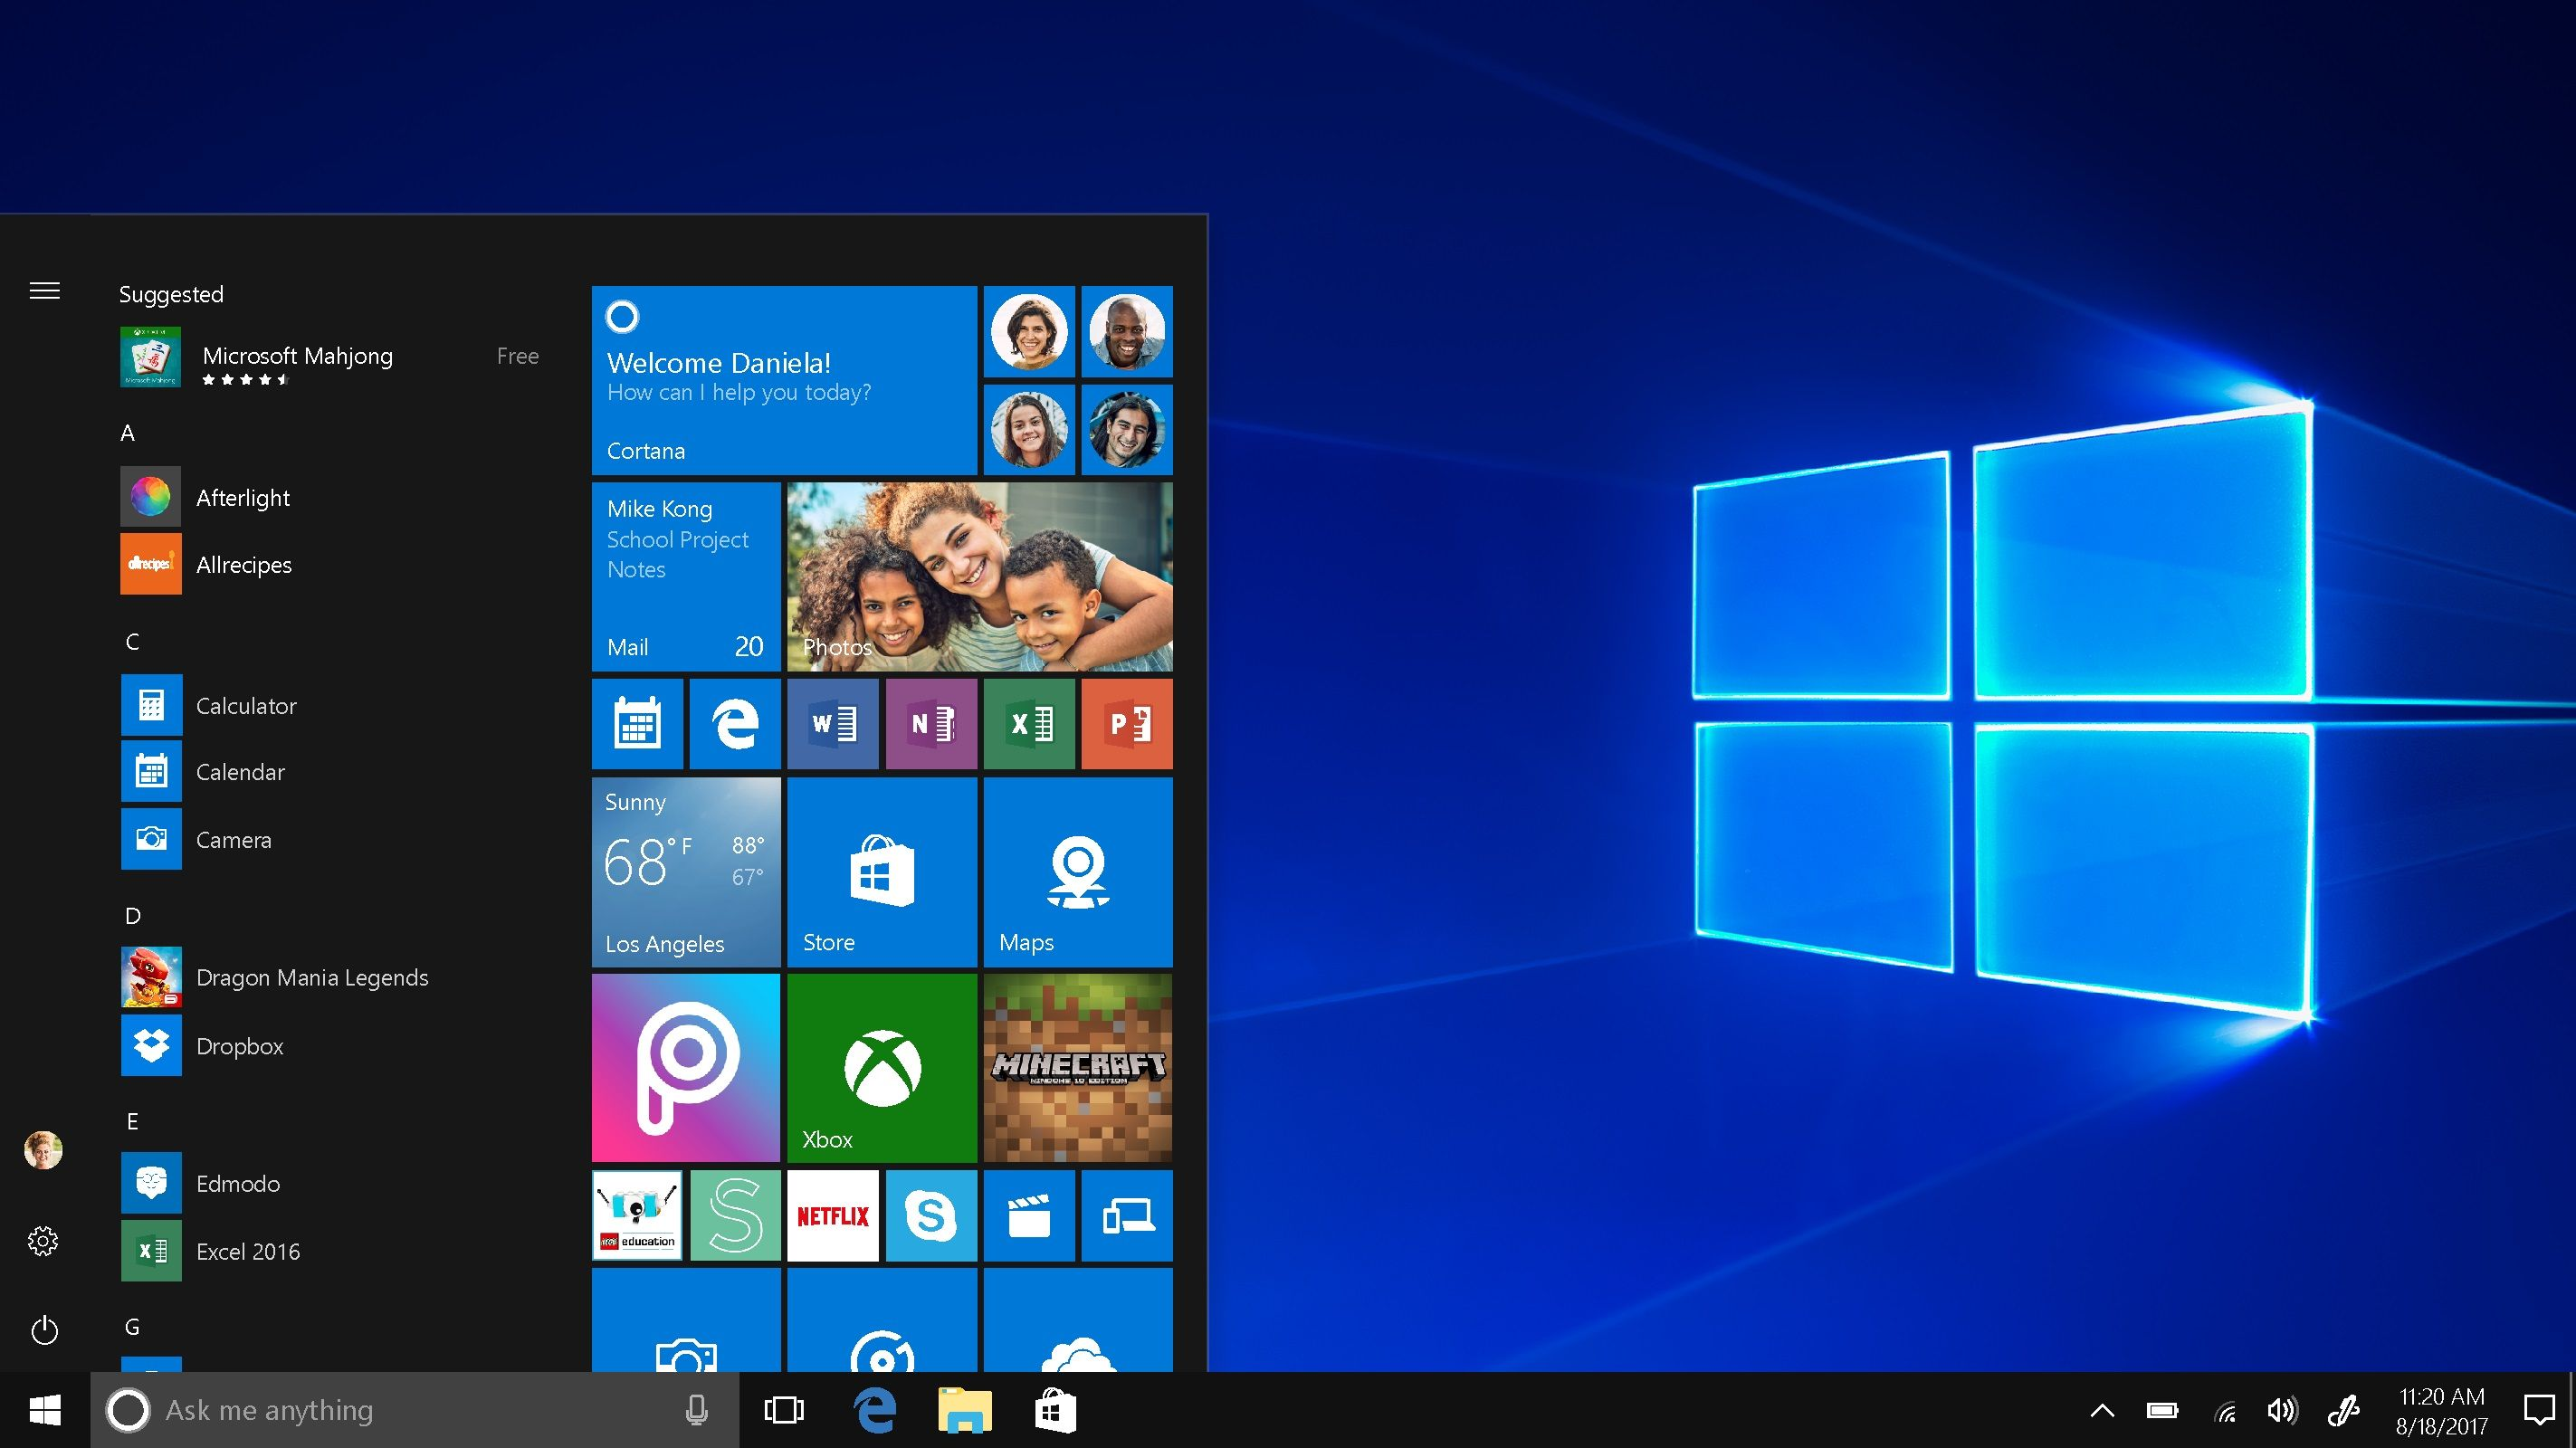 Try These Steps for Increasing Privacy and Security on Windows 10